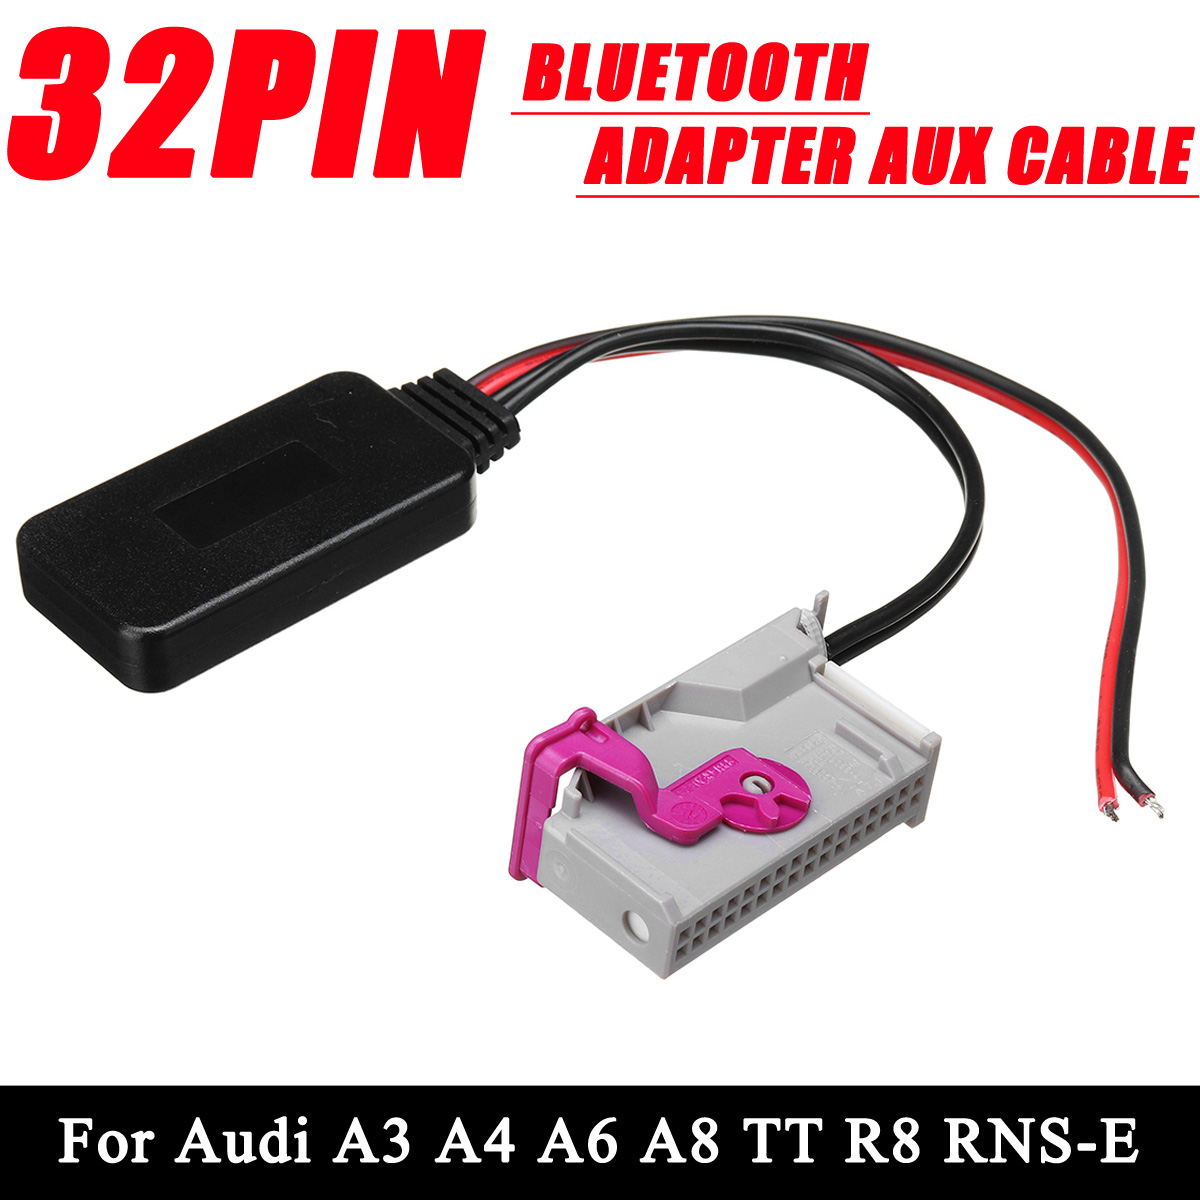 32Pin Wireless Bluetooth Adapter Aux Cable Auto Bluetooth Car Kit Music Audio Receiver Adapter For Audi A3 A4 A6 A8 TT R8 RNS-E